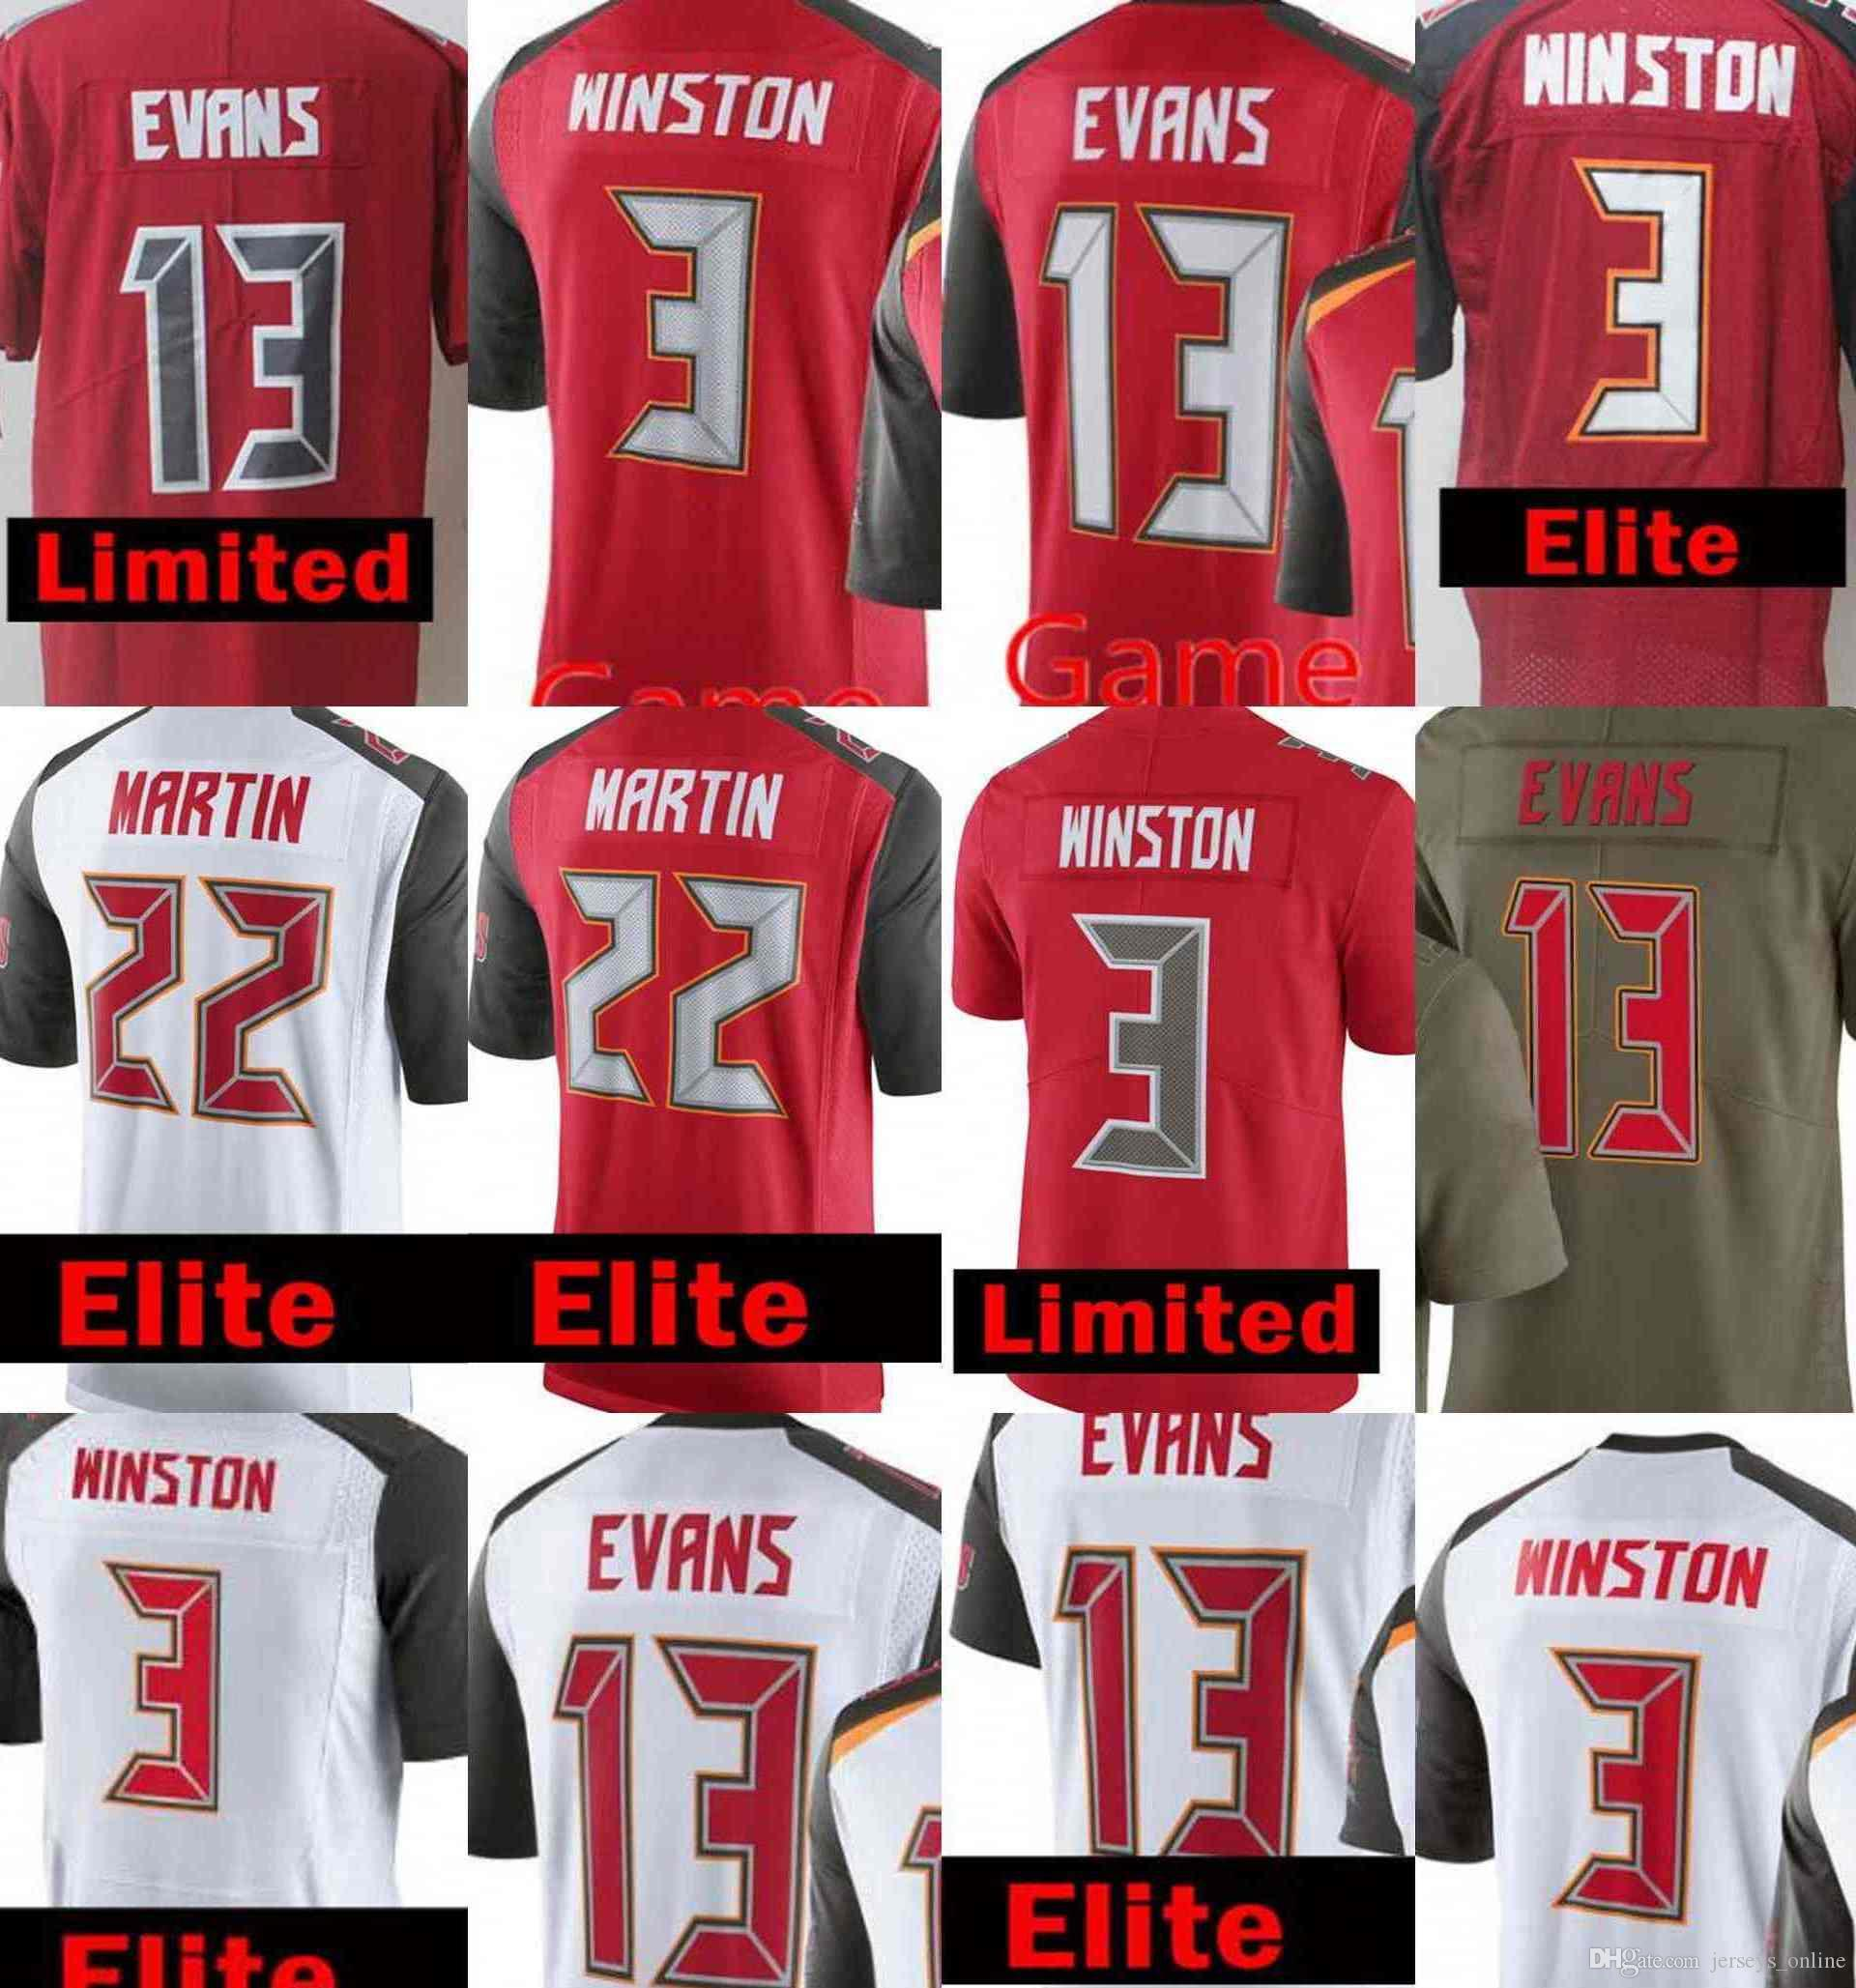 fcedfc0e1fe 2019 Indianapolis 12 Andrew Luck Colts 13 T.Y. Hilton Jersey 53 Darius  Leonard 18 Peyton Manning Tampa Bays 3 Jameis Winston Mike Evans 01 From ...